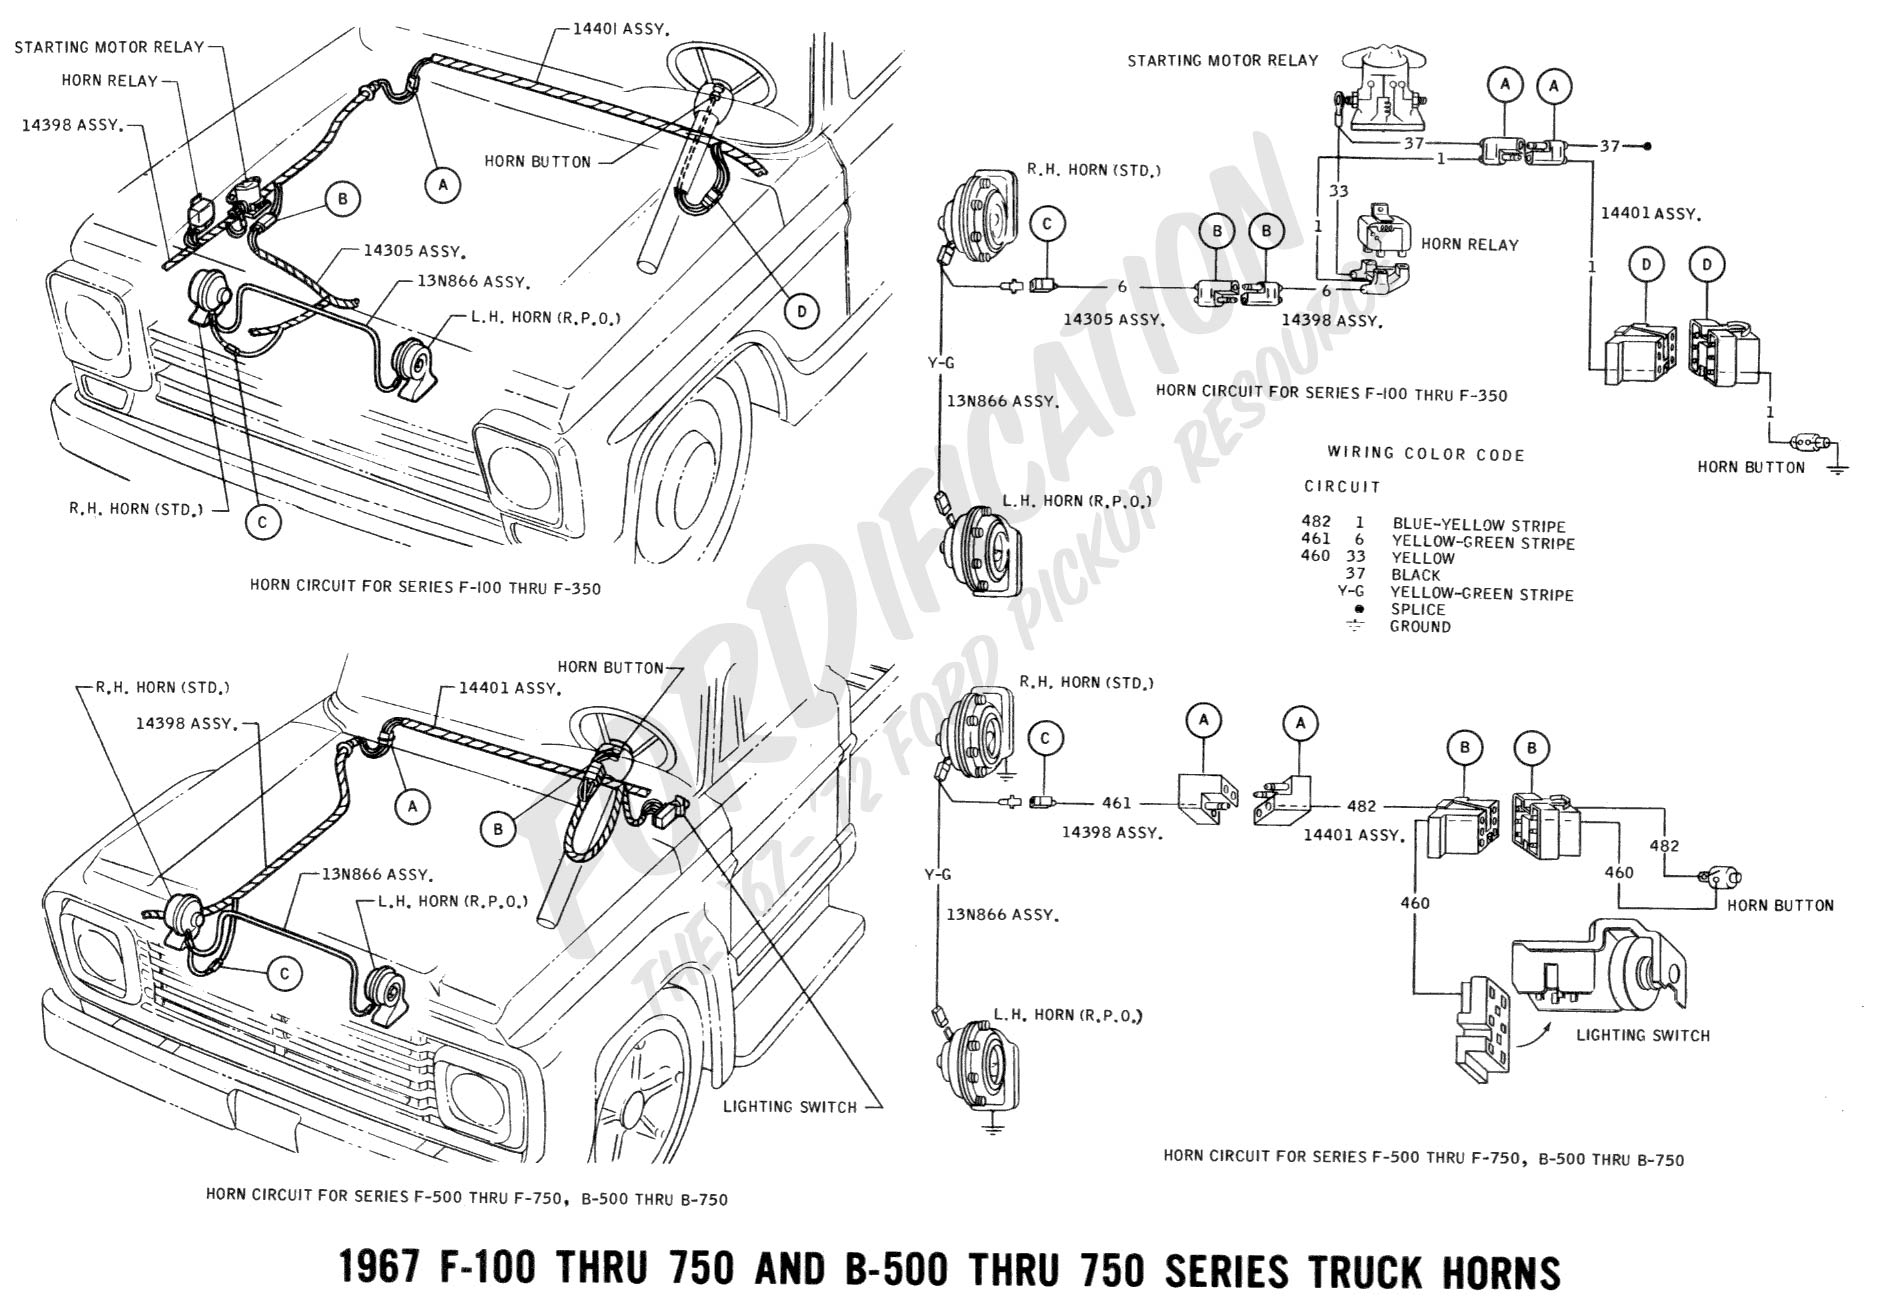 Wiring Diagram For 1976 Ford F250 Books Of F650 Turn Signal Detailed Schematics Rh Antonartgallery Com